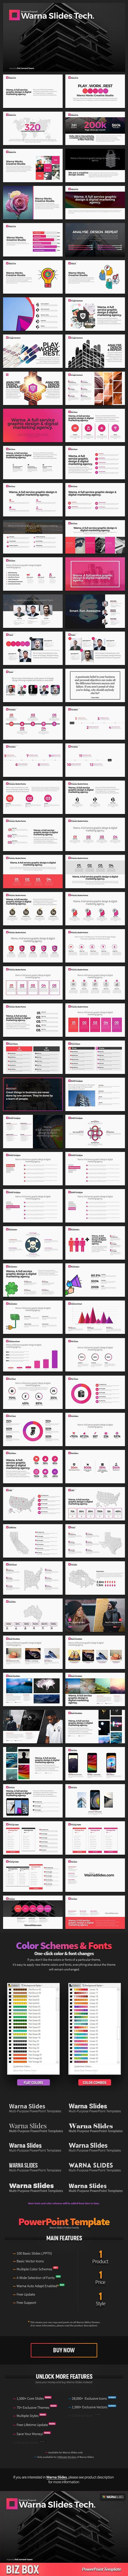 Biz Box PowerPoint Template #minimal #simple